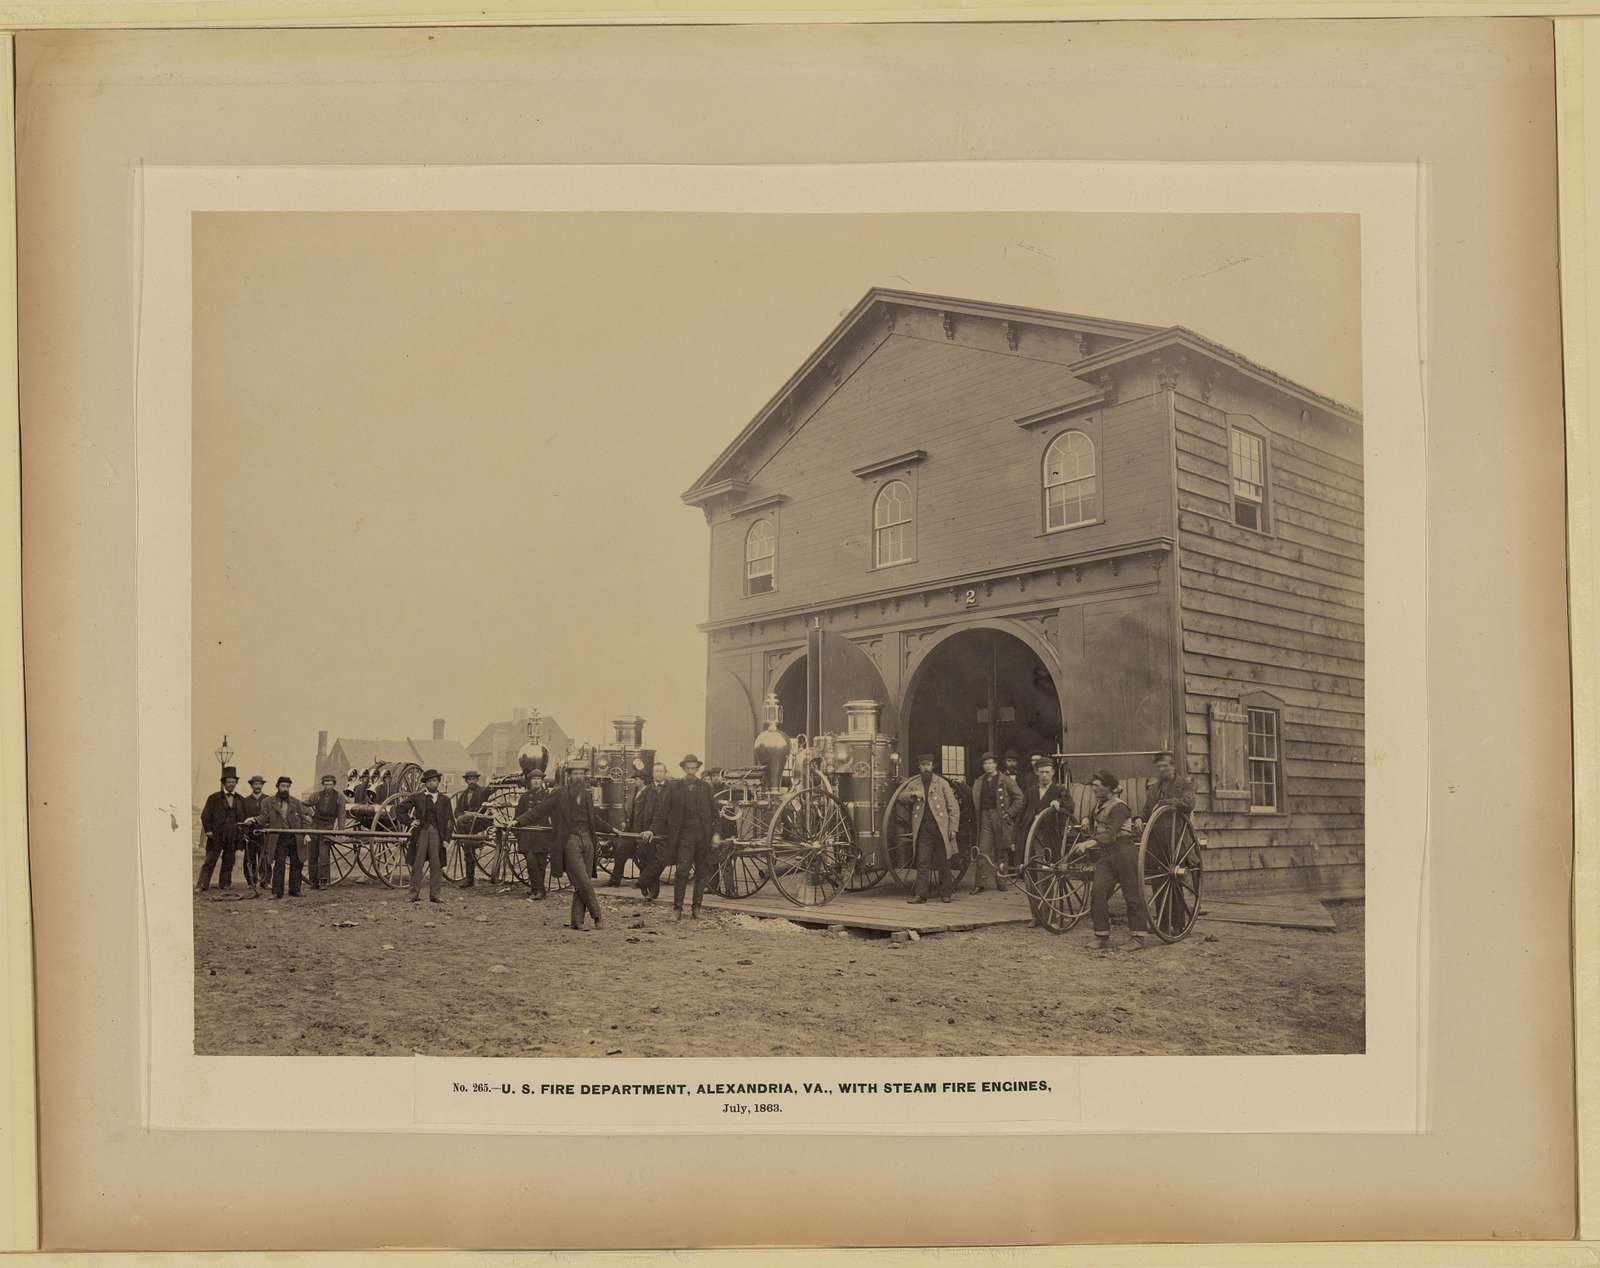 U.S. Fire Department, Alexandria, Va., with steam fire engines, July, 1863